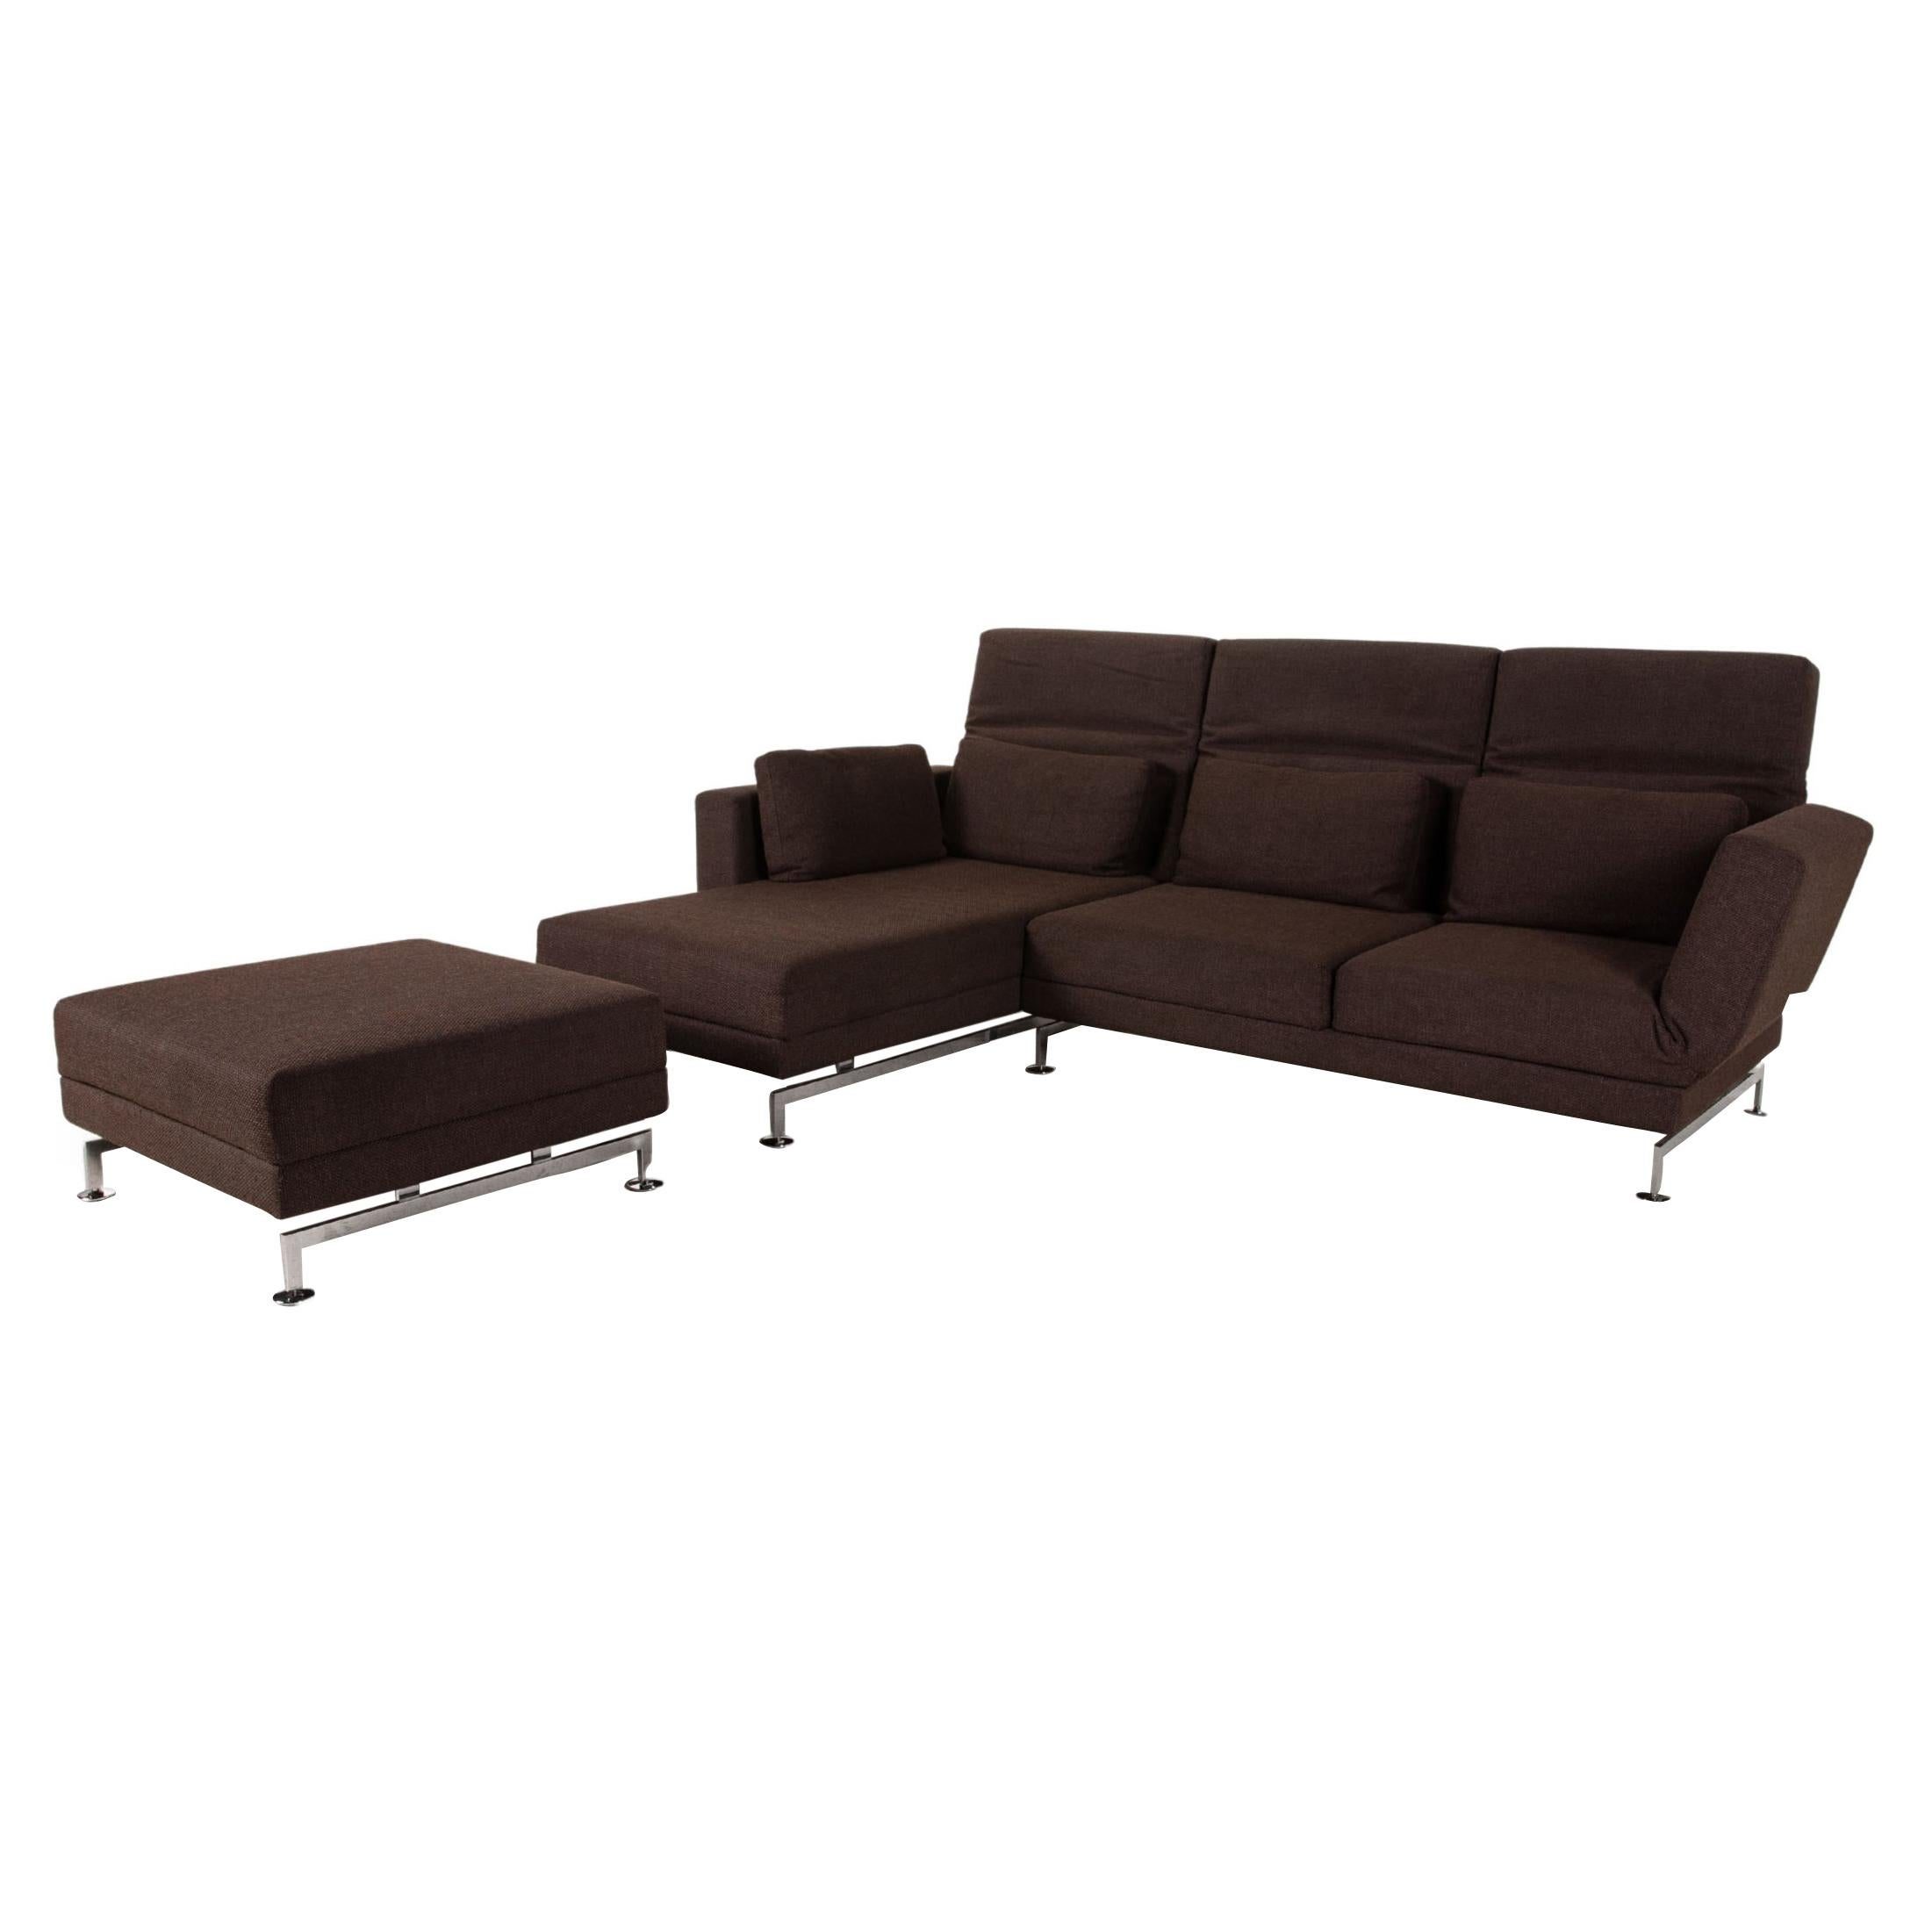 Brühl & Sippold Moule fabric sofa brown corner sofa incl stool function relax